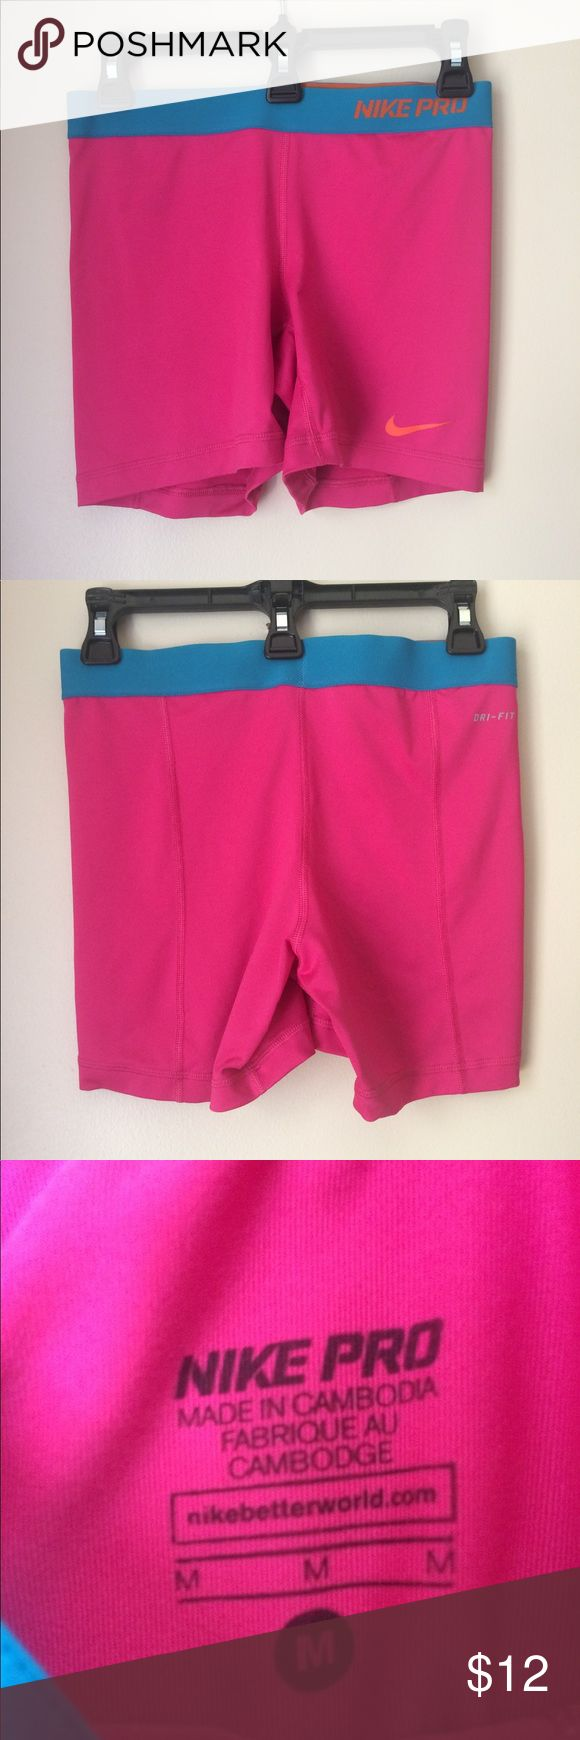 Like new Nike compression shorts In excellent condition no wear or tears like new Nike Shorts